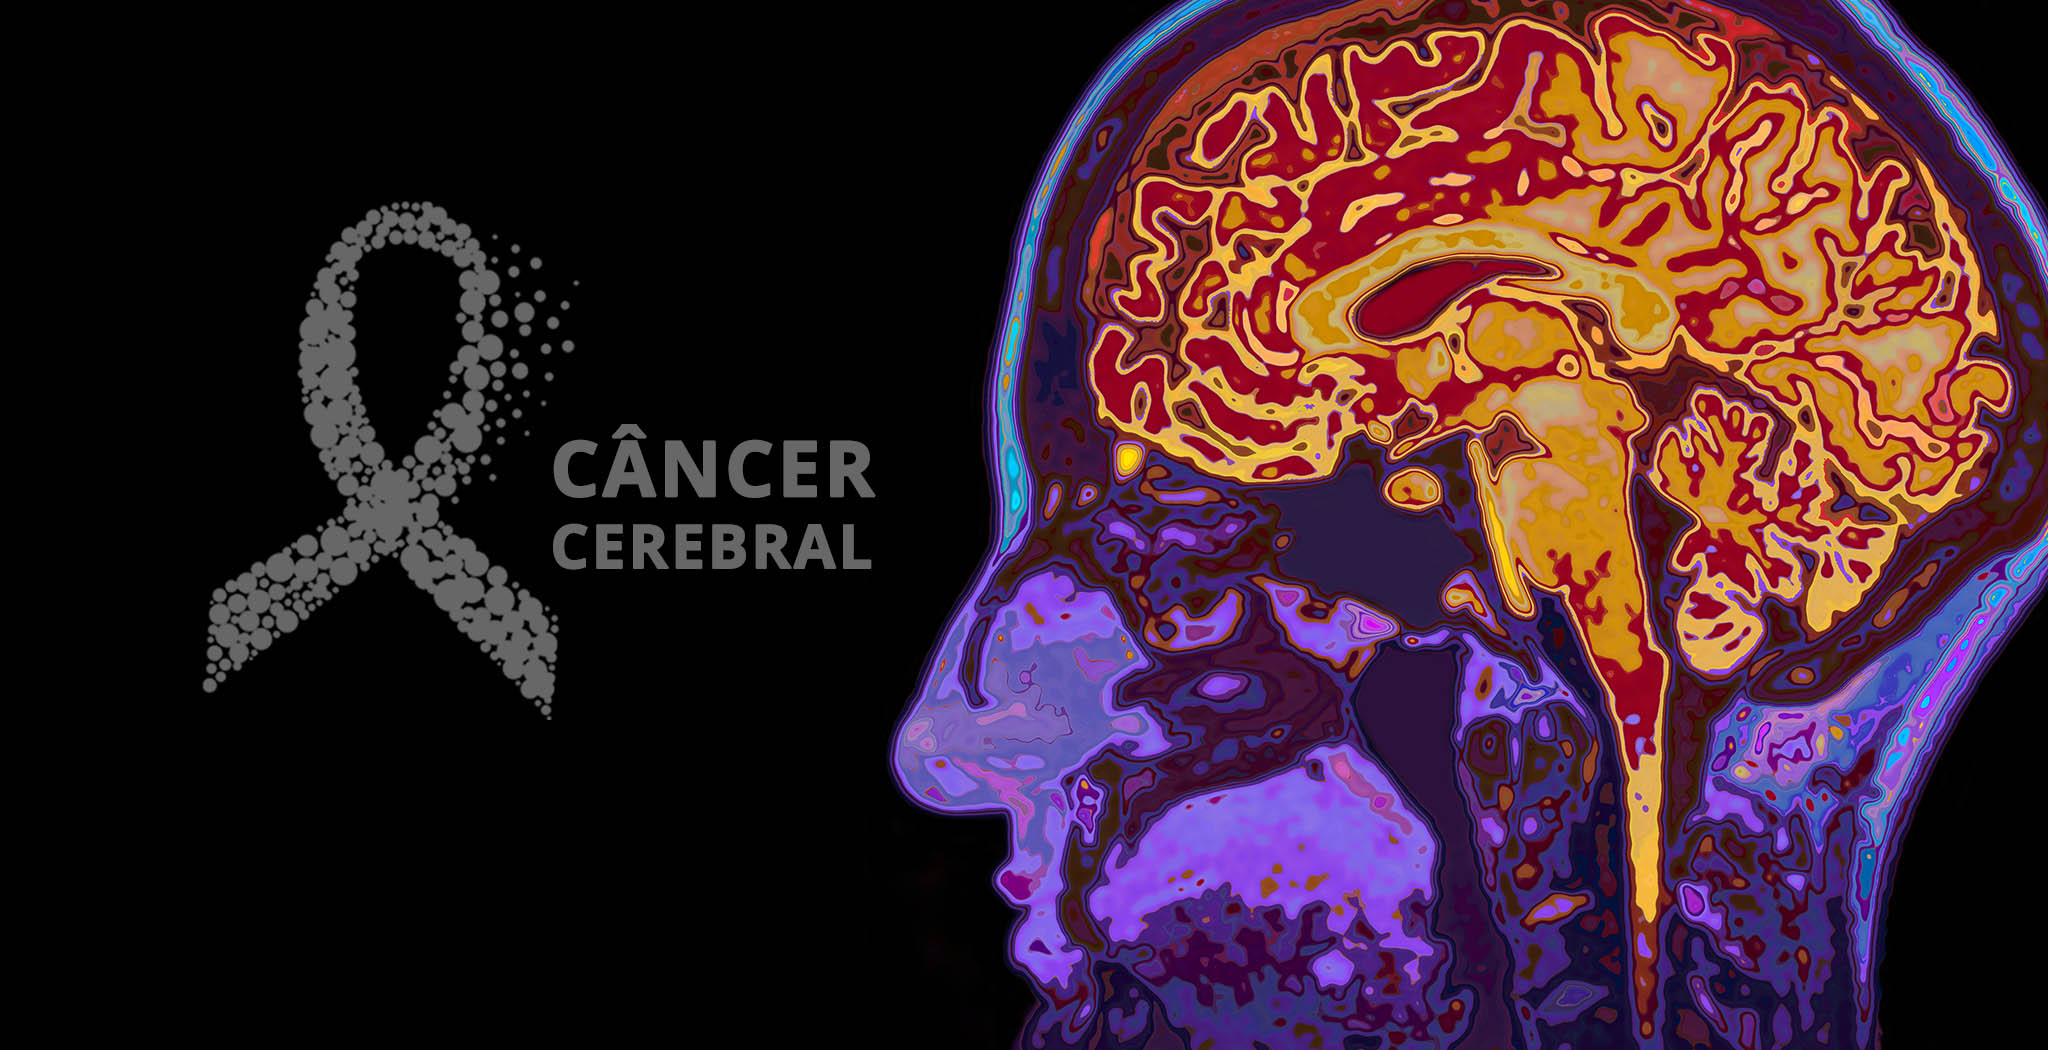 001 Cancer Cerebral